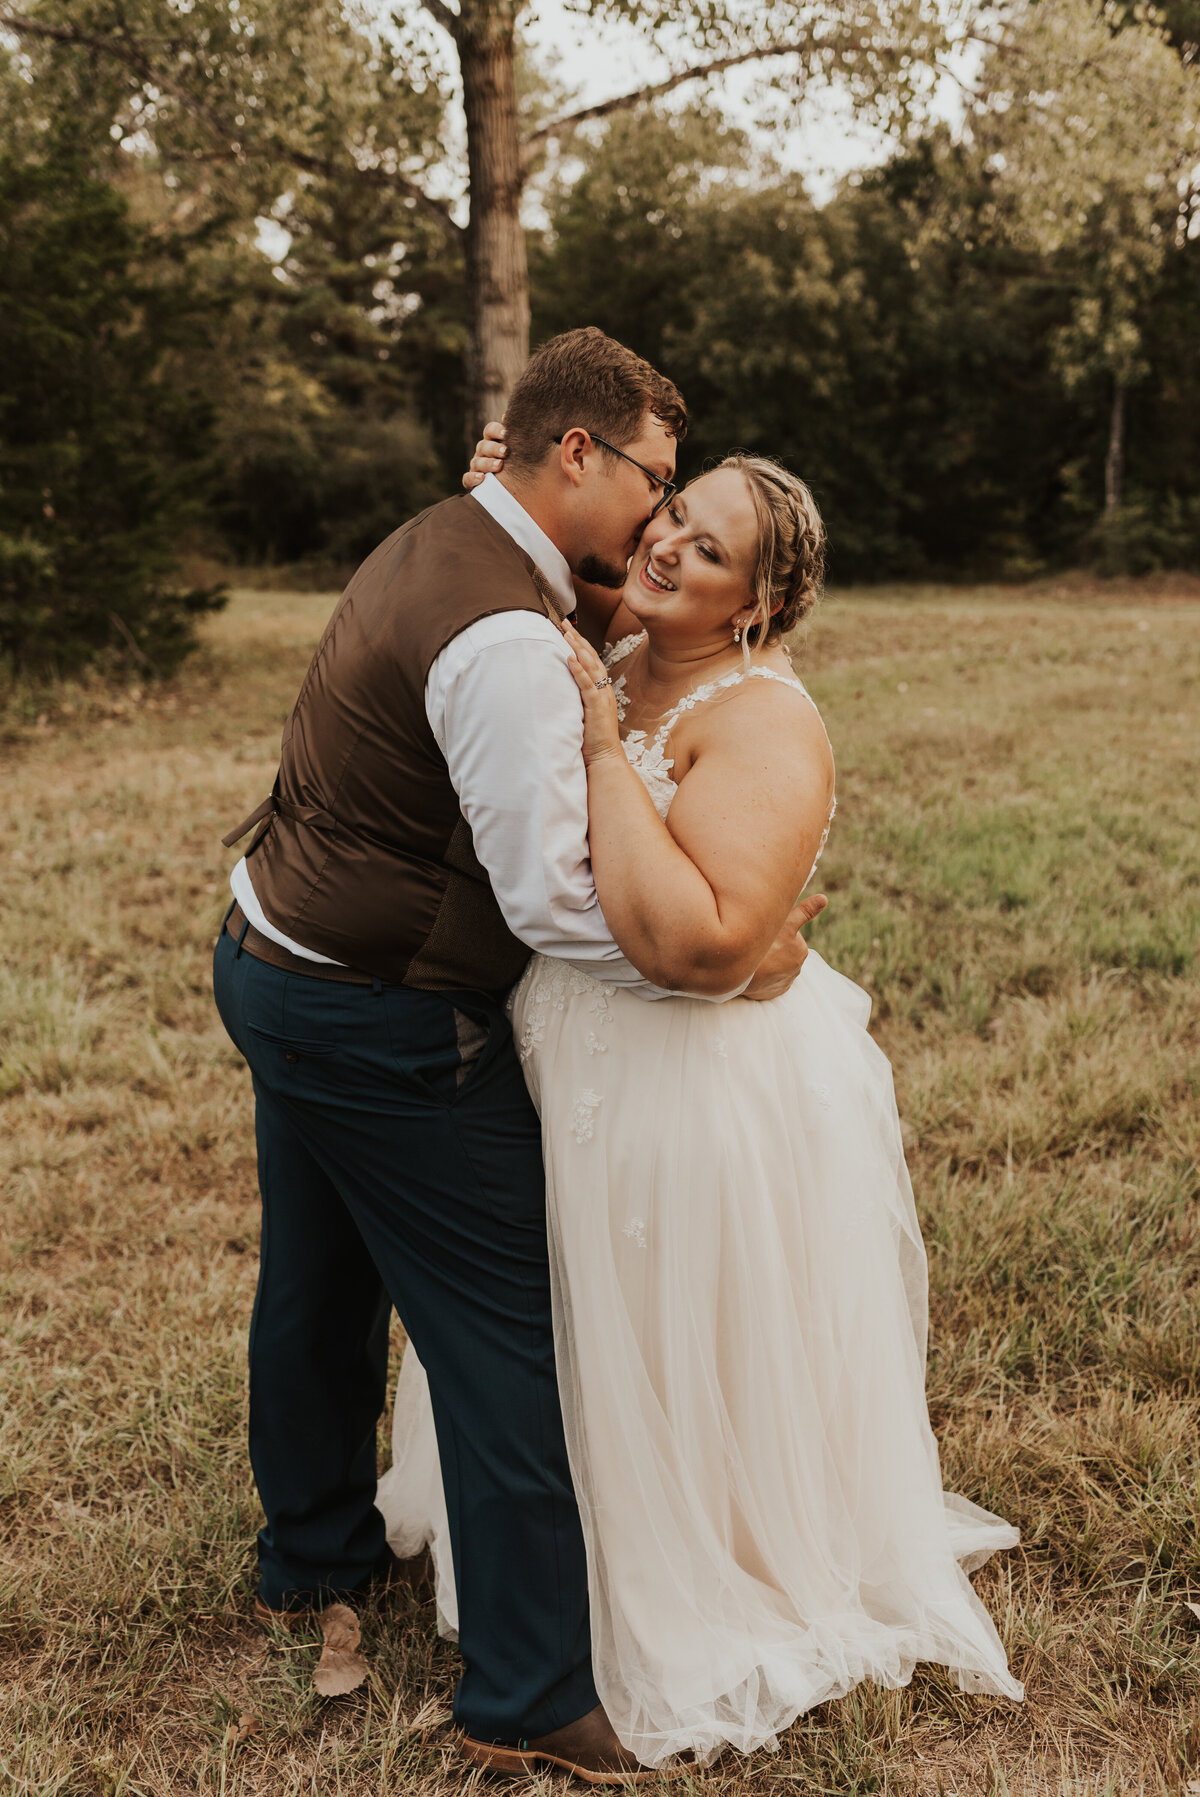 The-Hales-wedding-smithville-texas-by-bruna-kitchen-photography-35